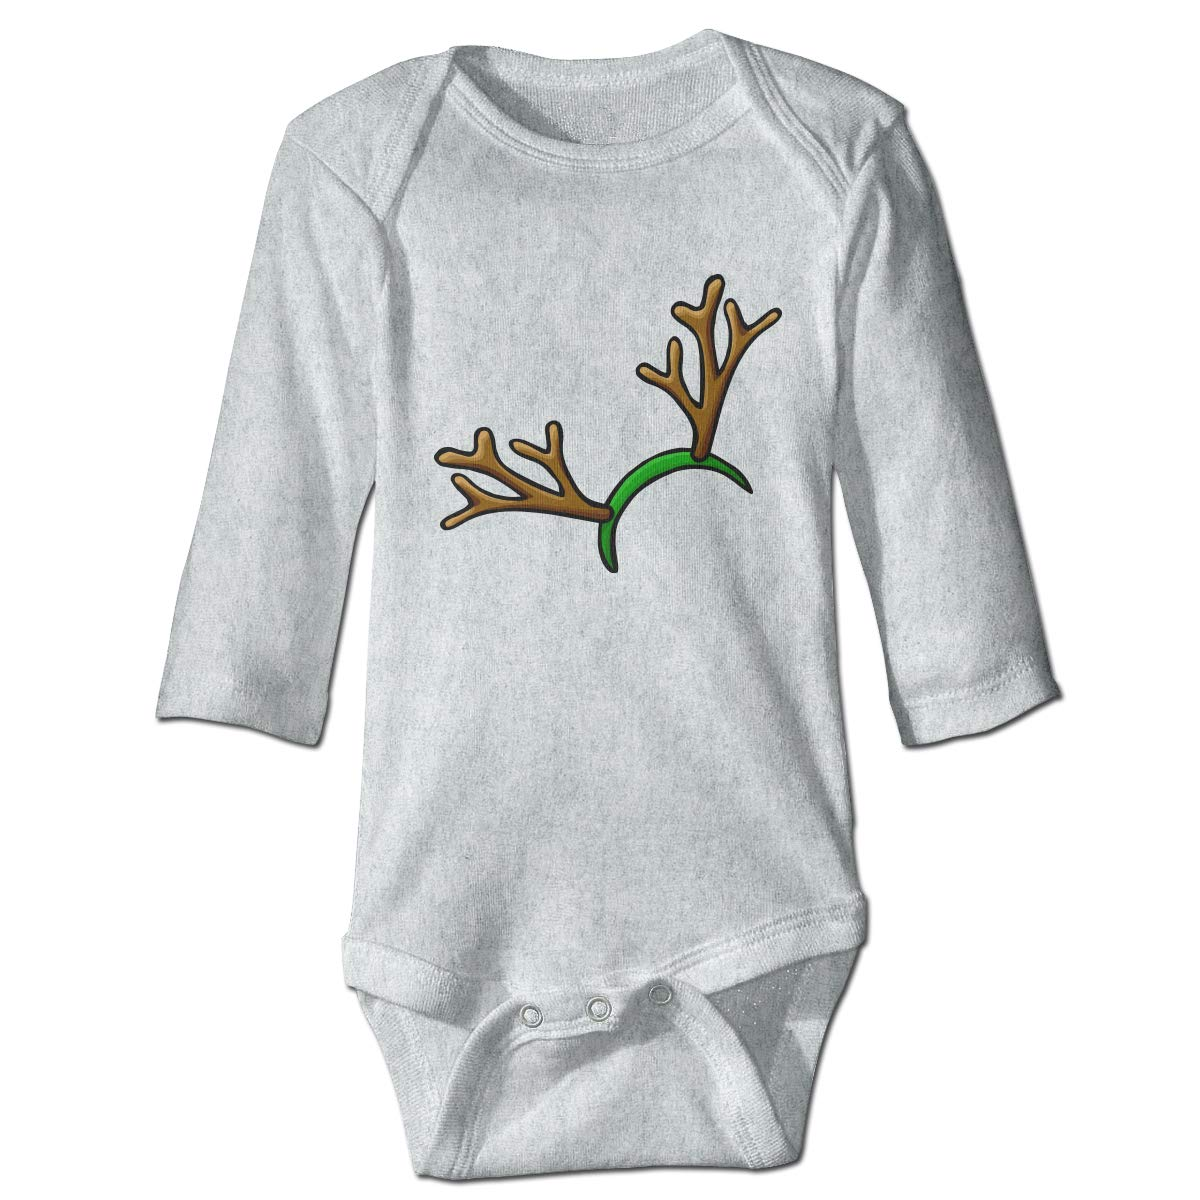 Wangx-4 Infant Baby Girl Boys Christmas Reindeer Antlers Long Sleeve Outfits Bodysuit Jumpsuit 0-24 Months